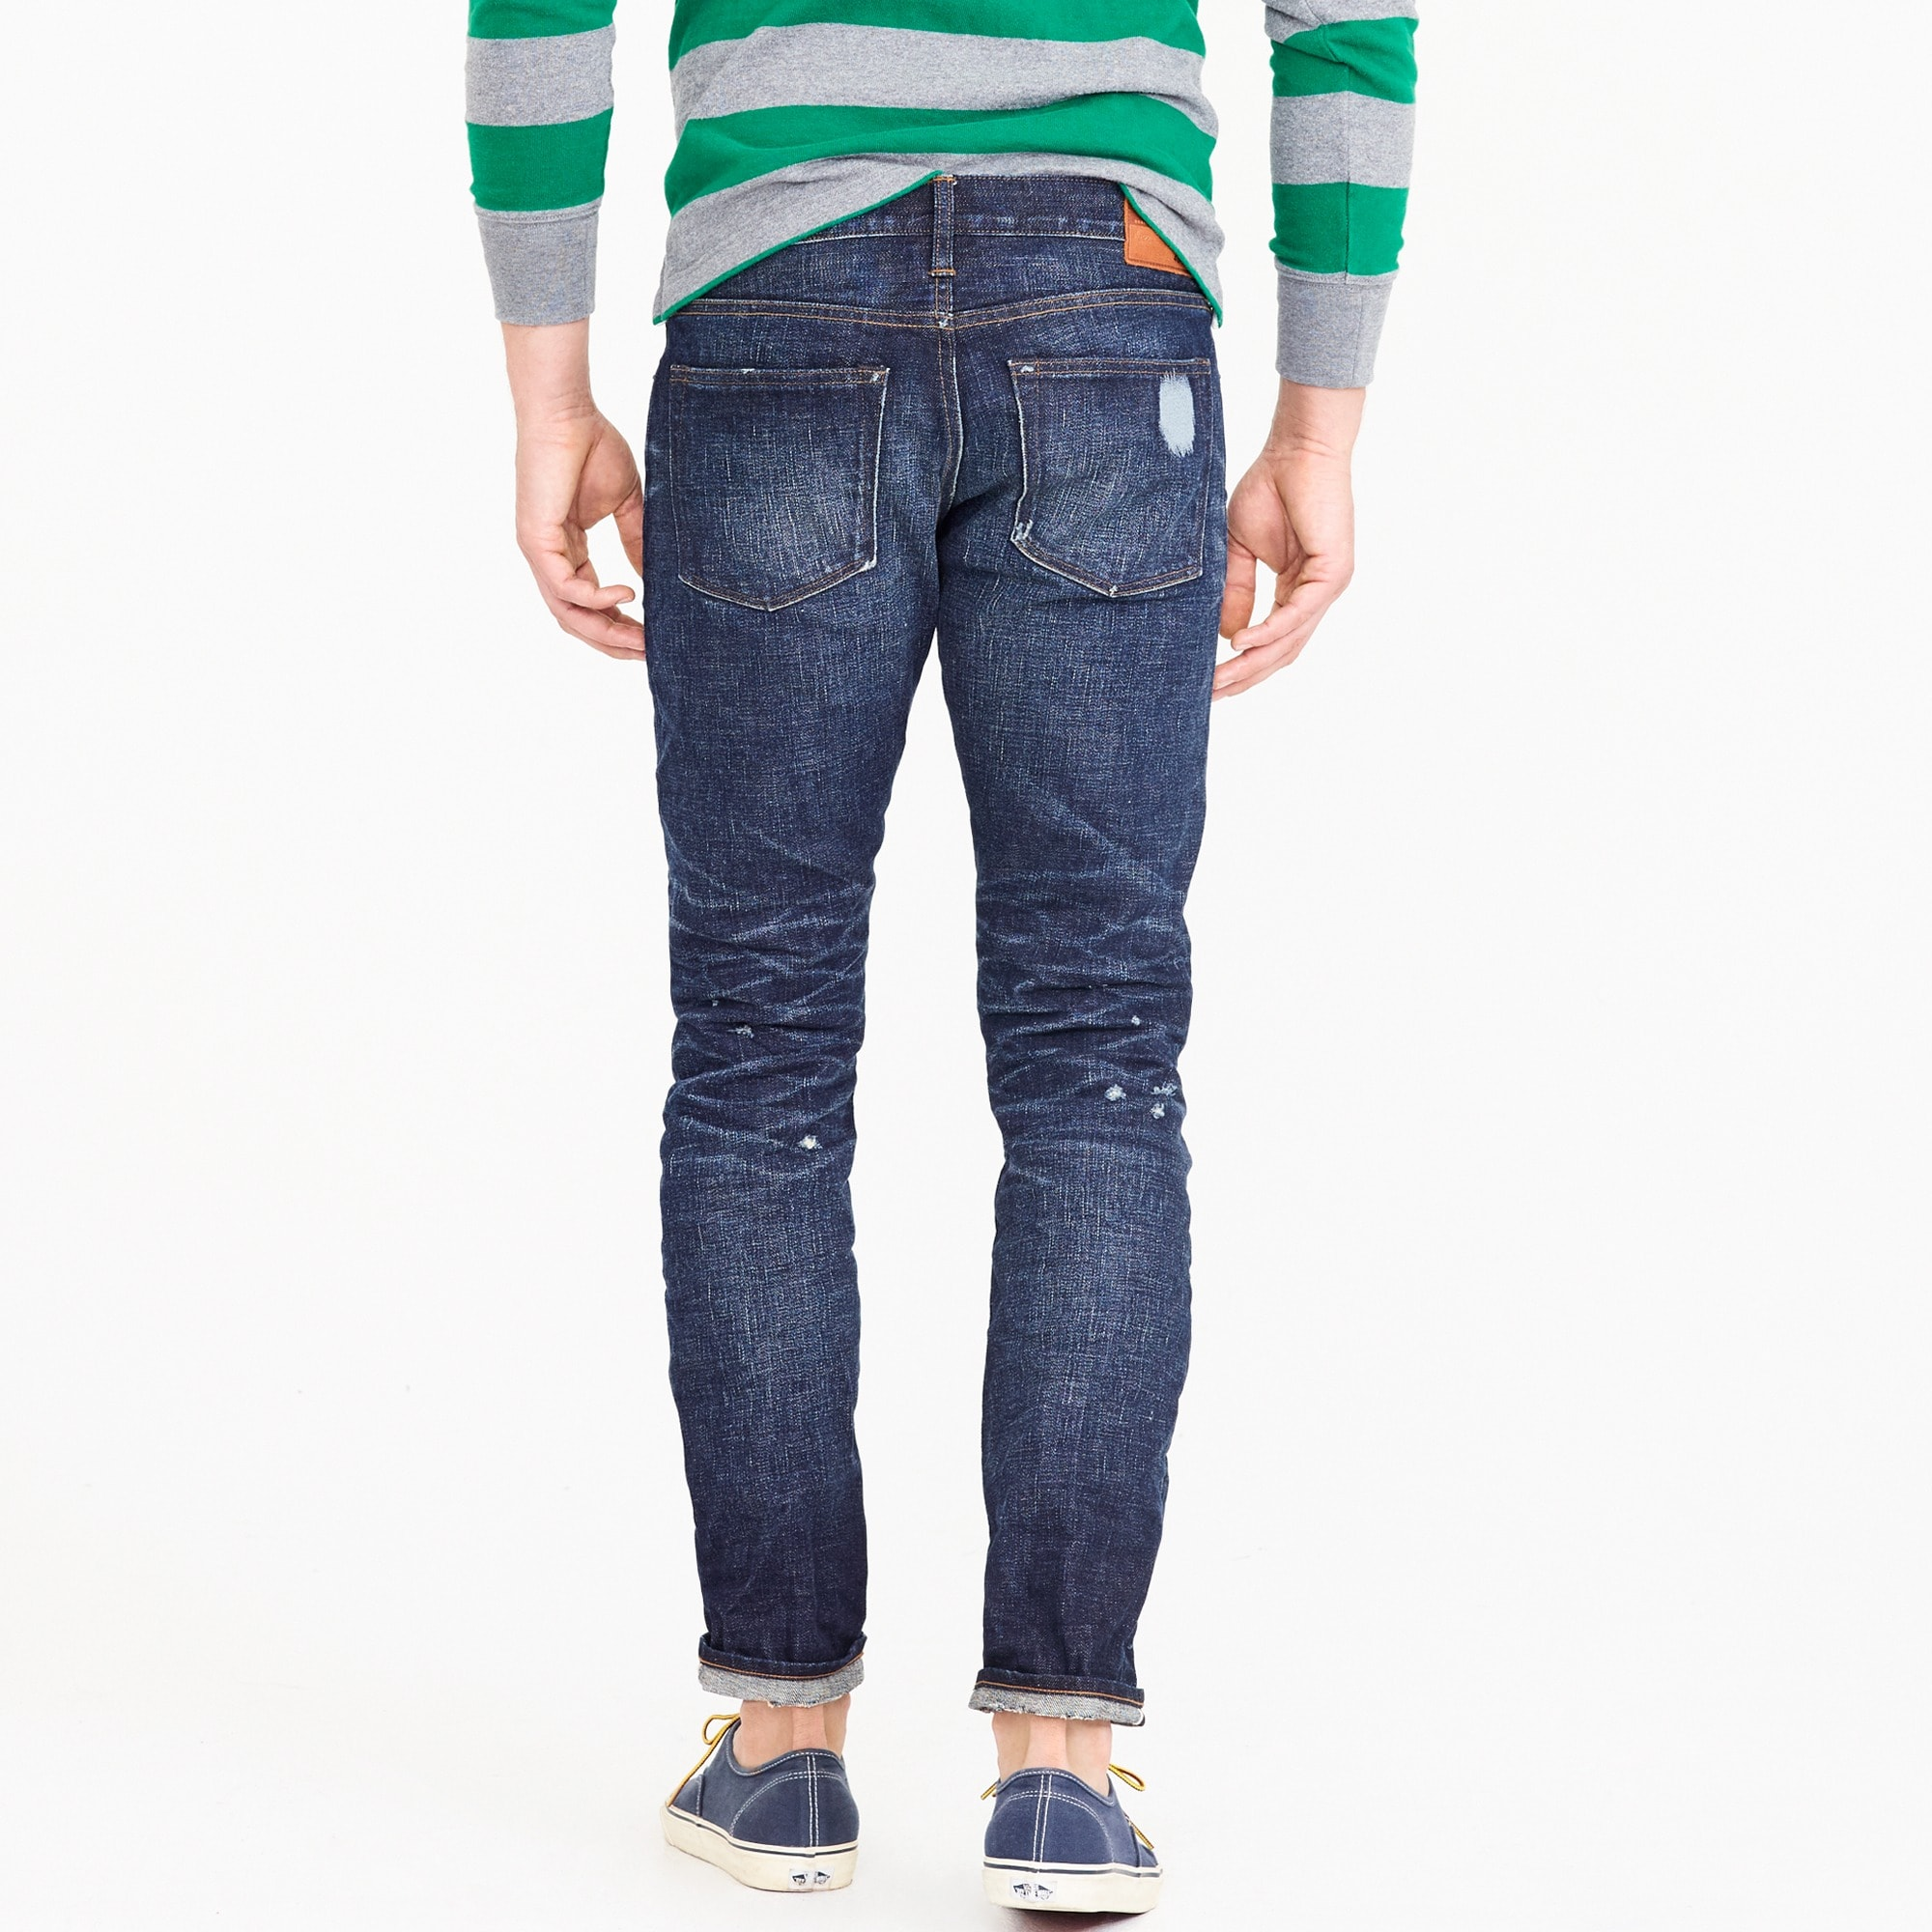 484 Slim-fit stretch jean in washed selvedge